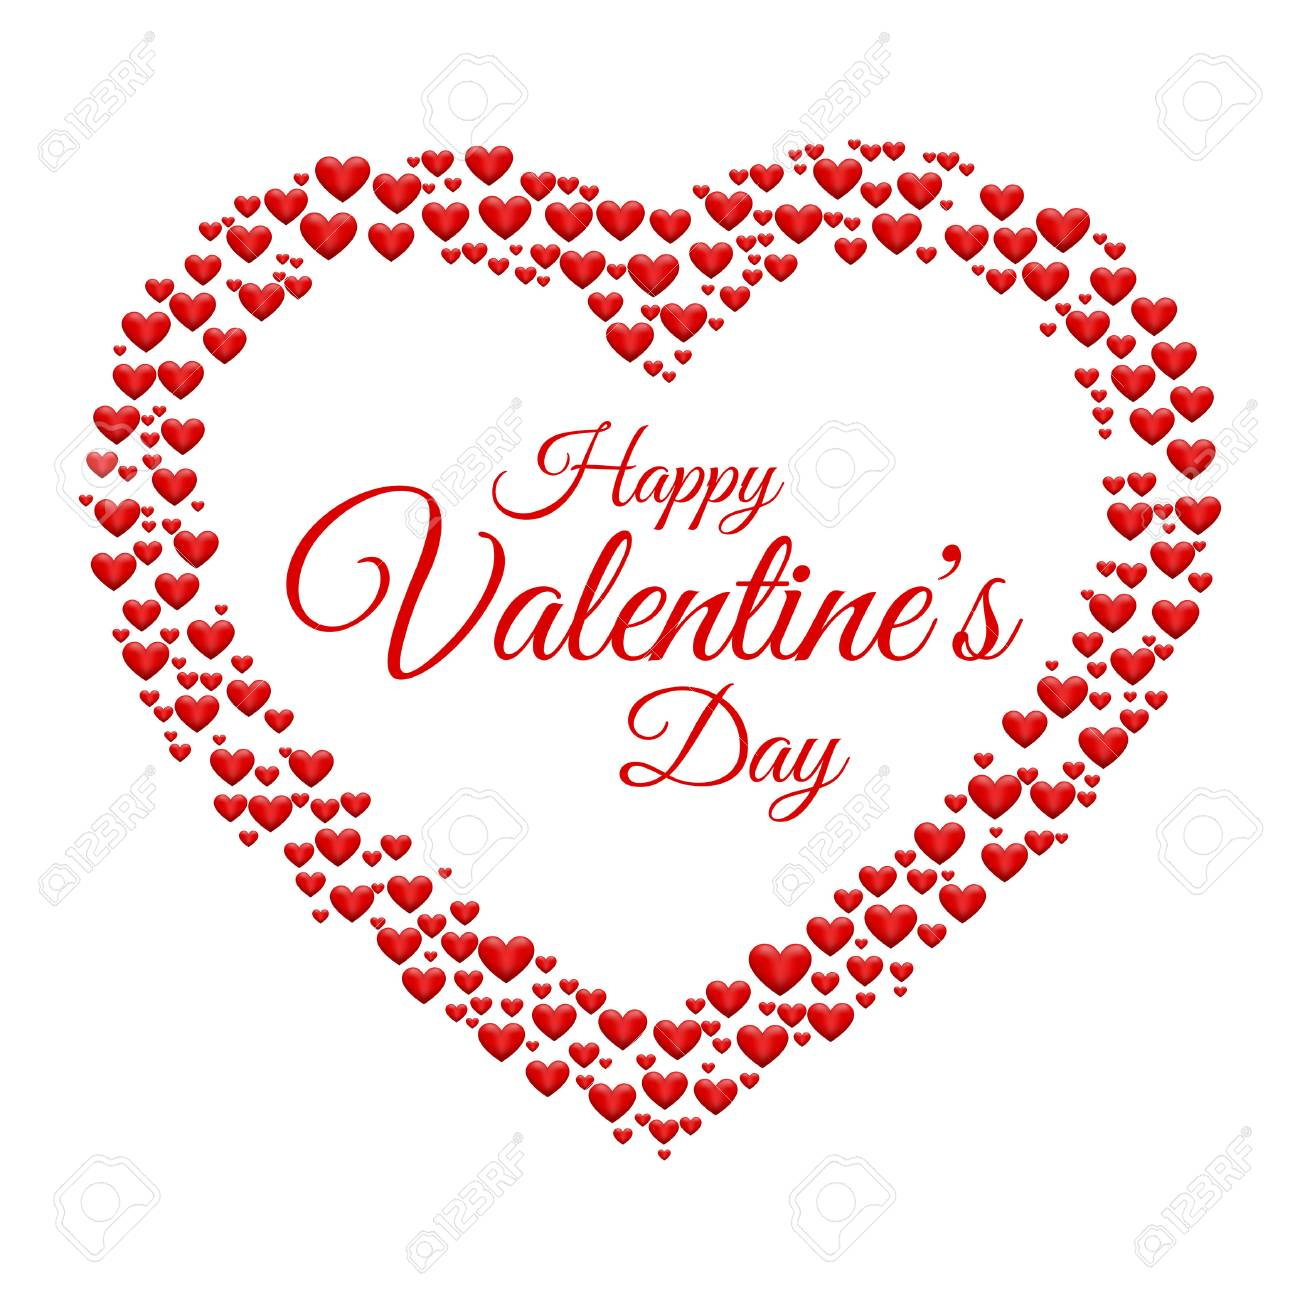 Hearts Frame Valentine\'s Day Vector Background Royalty Free Cliparts ...